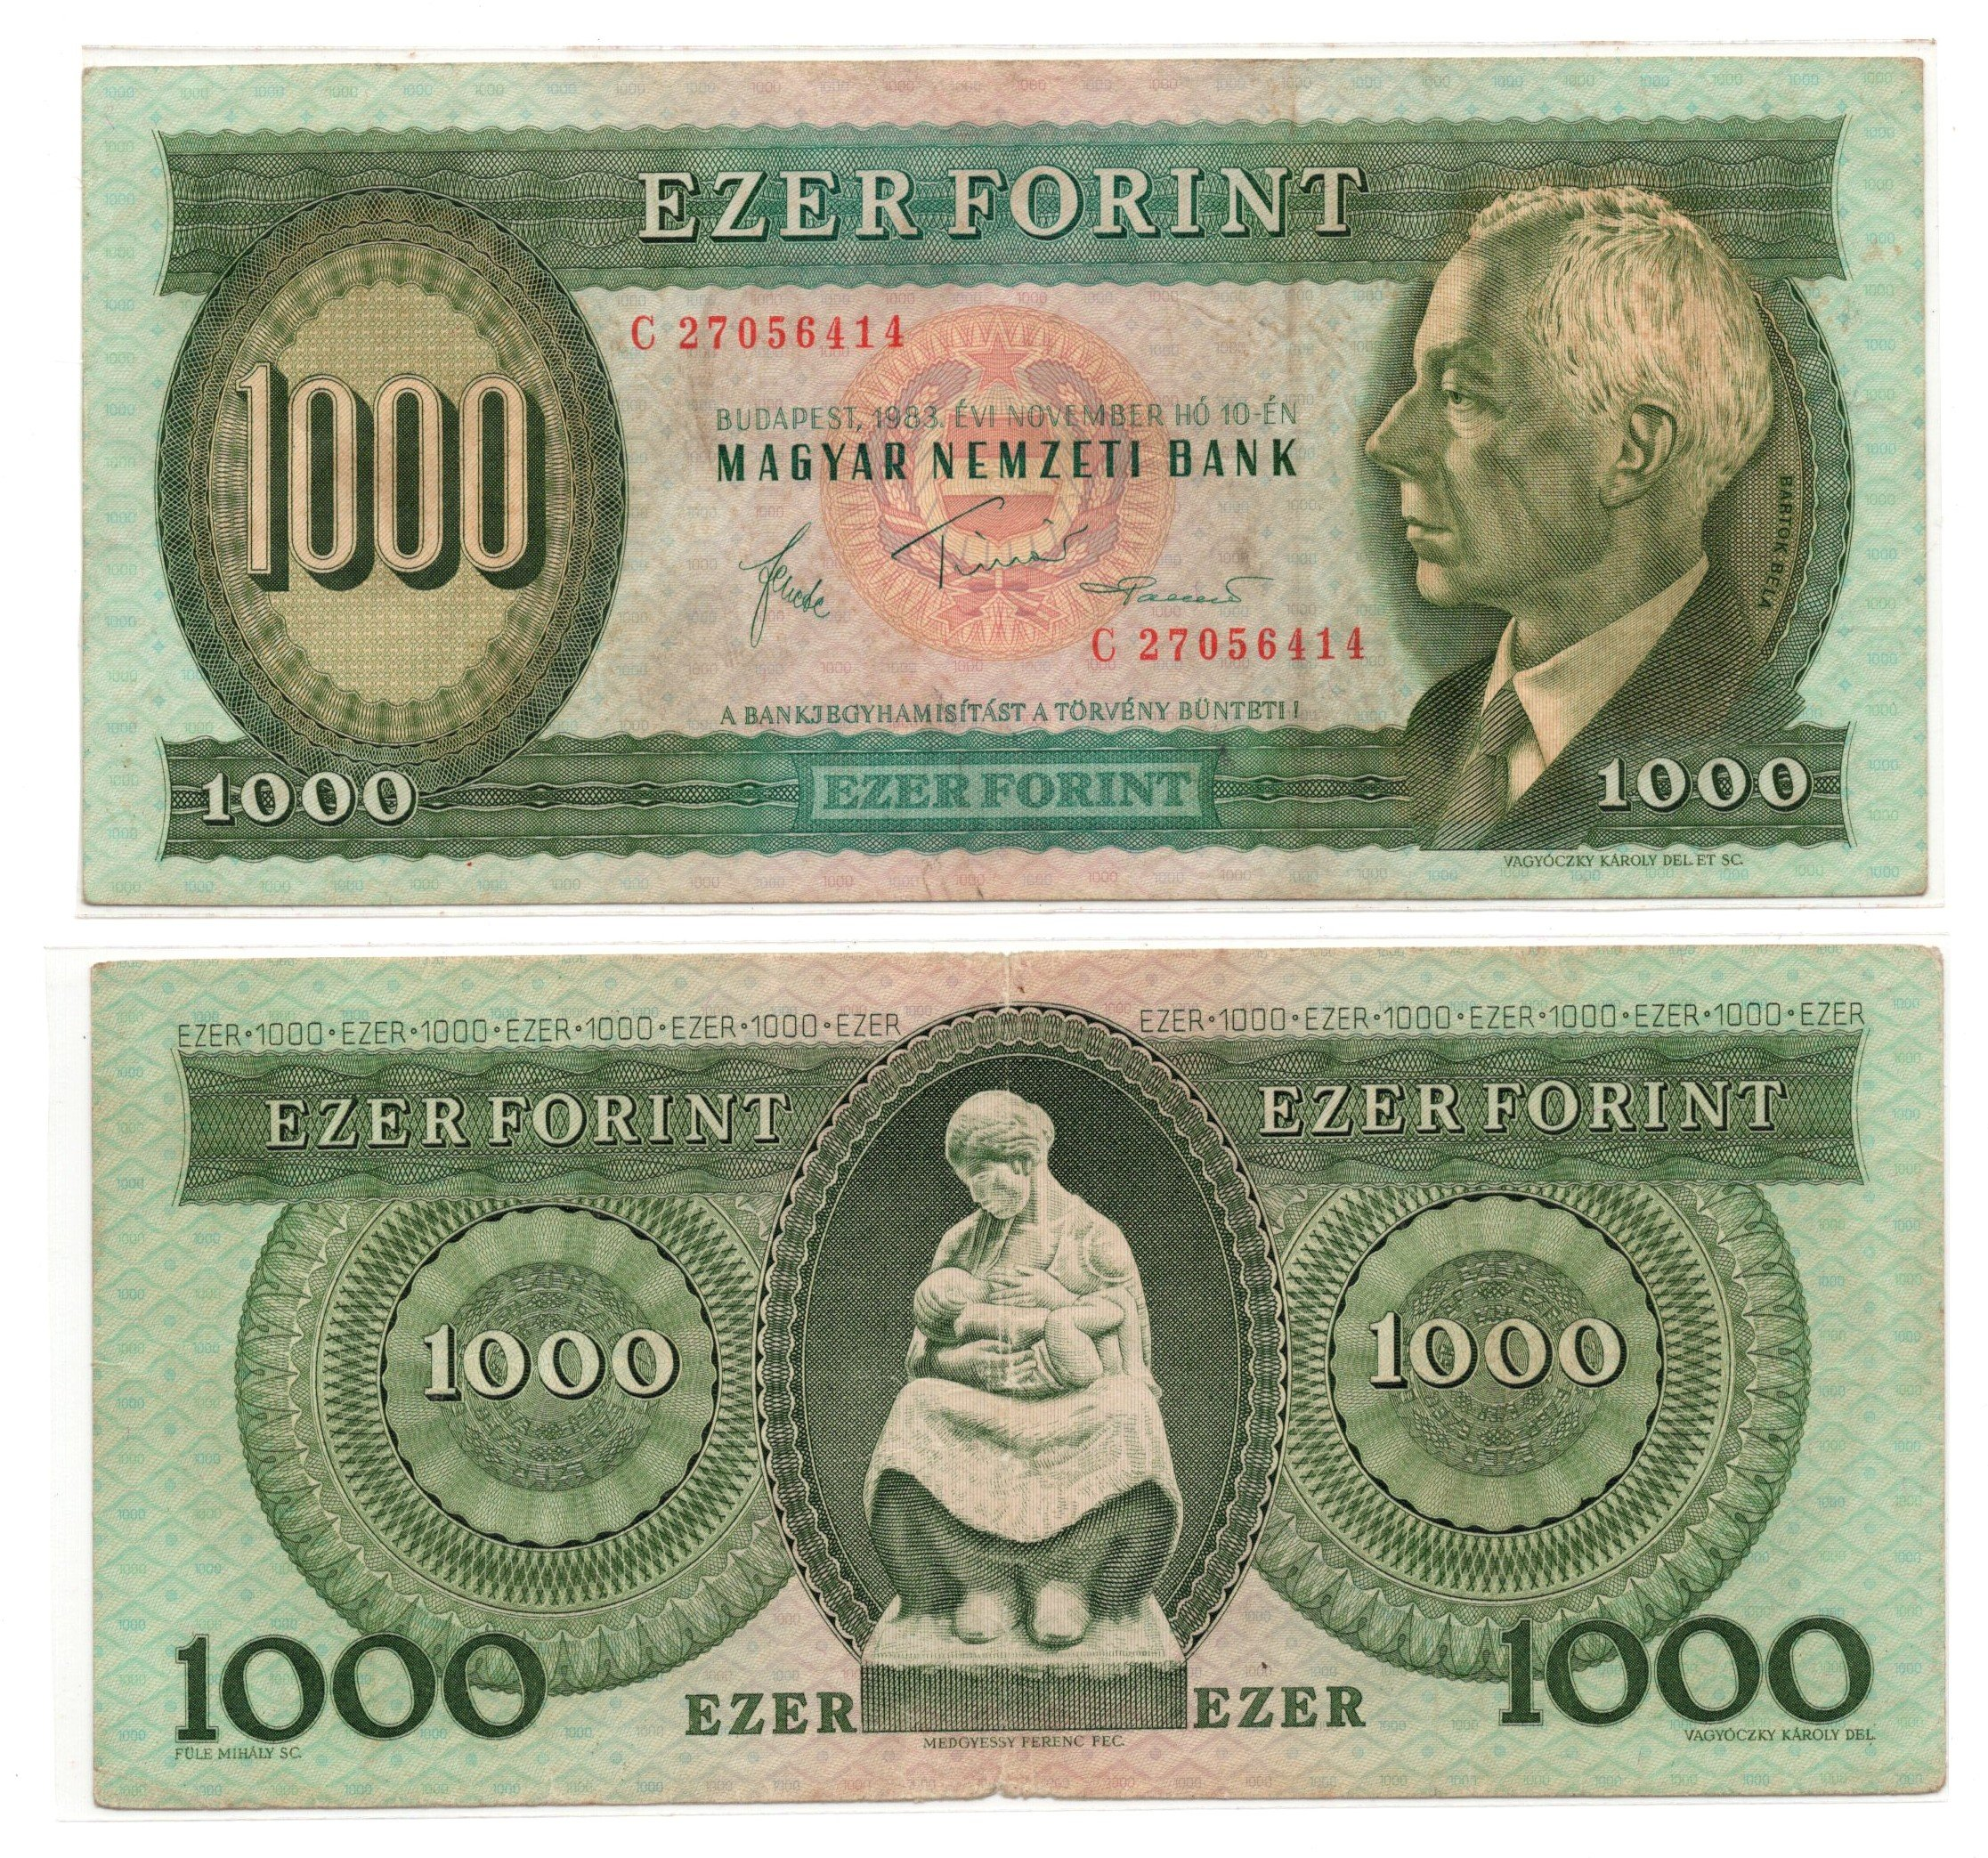 Hungary 1000 forint 1983 banknote for sale